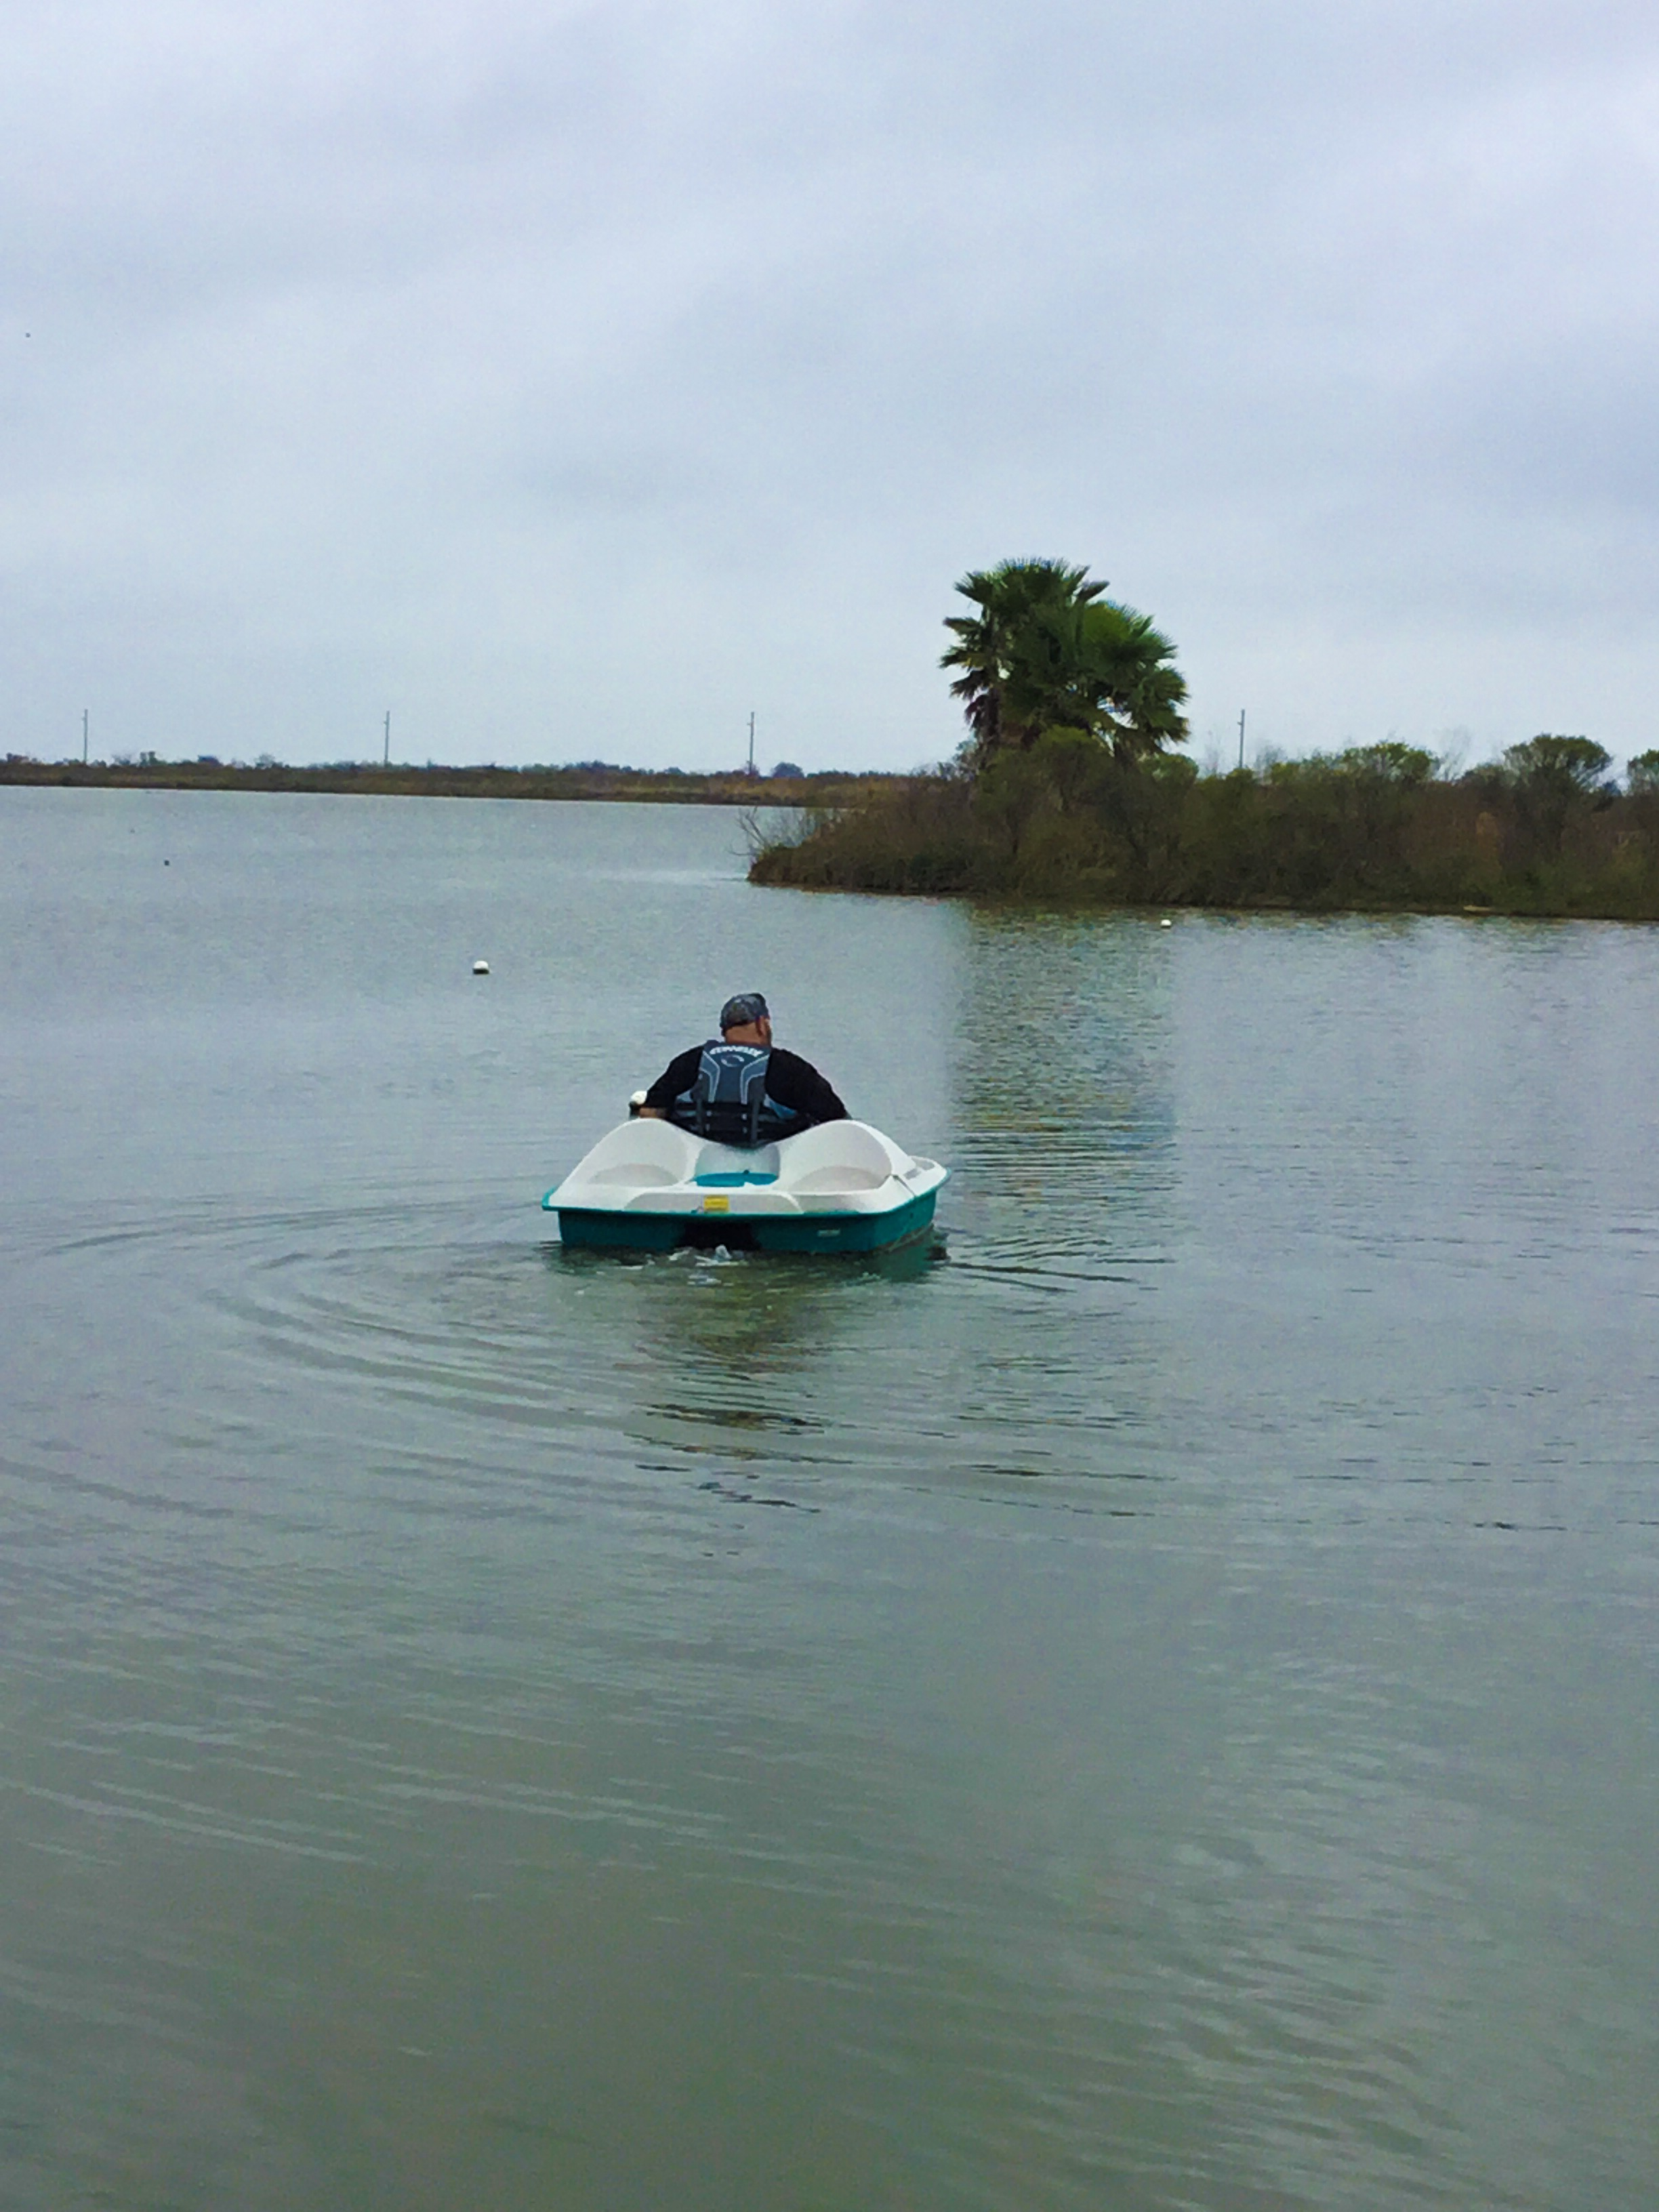 Hubby on his way to check the crab trap.